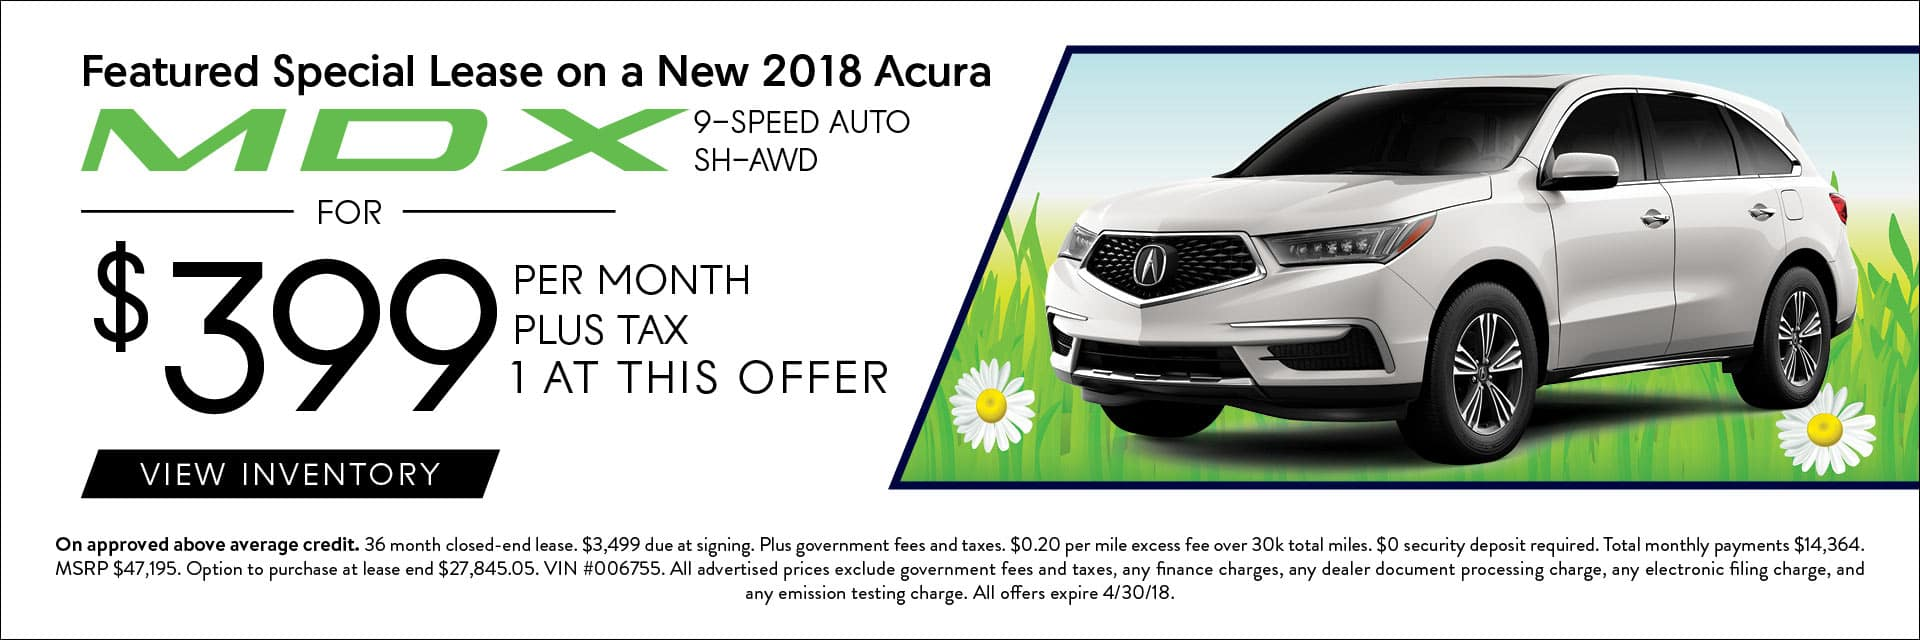 2019 Acura MDX Spring Offers Banner